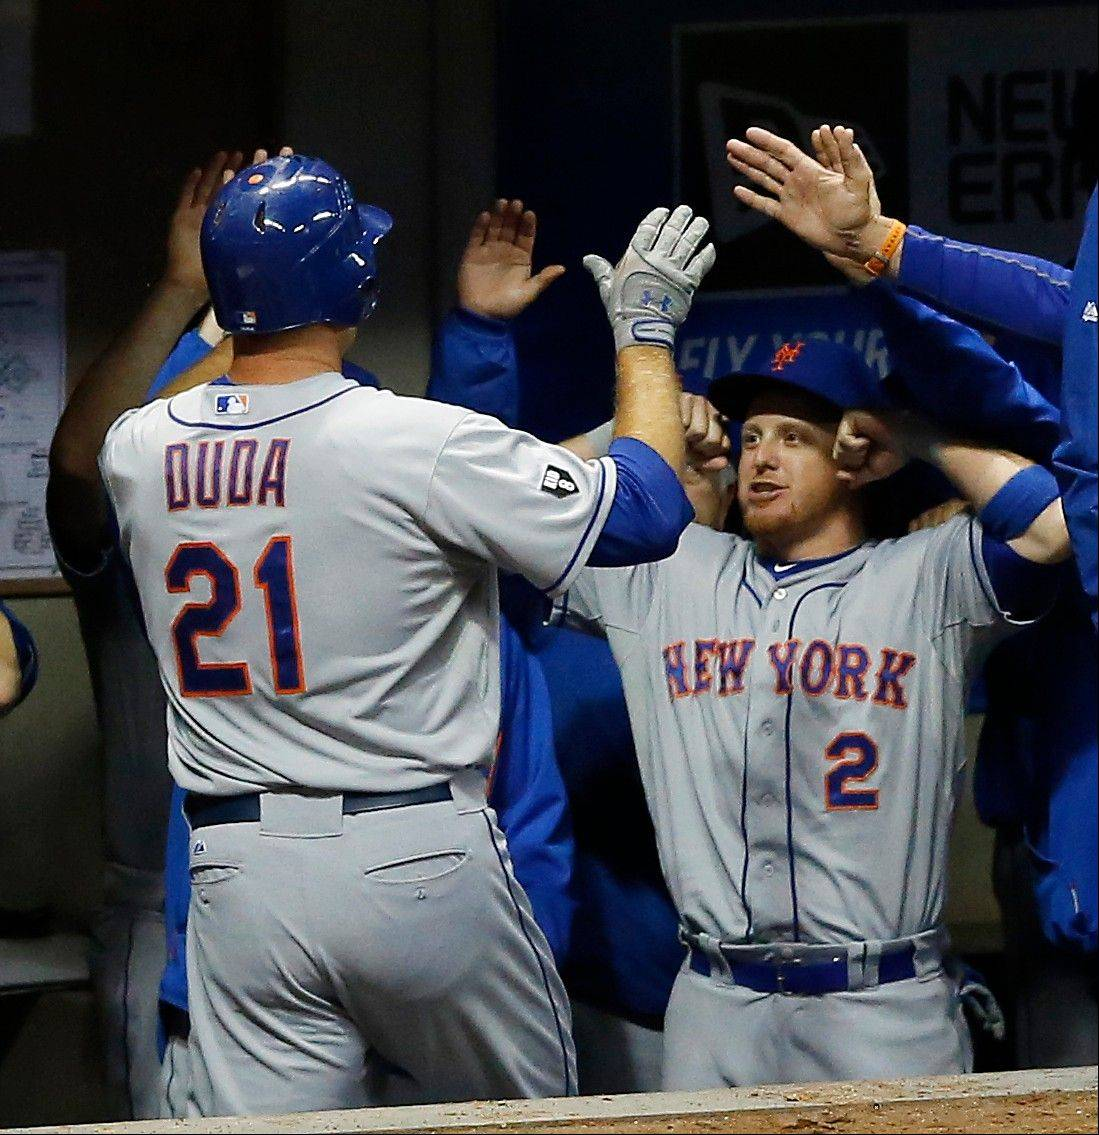 The Mets' Lucas Duda (21) is greeted by teammate Justin Turner after hitting a solo home run off the Brewers' Manny Para during the sixth inning Friday in Milwaukee.